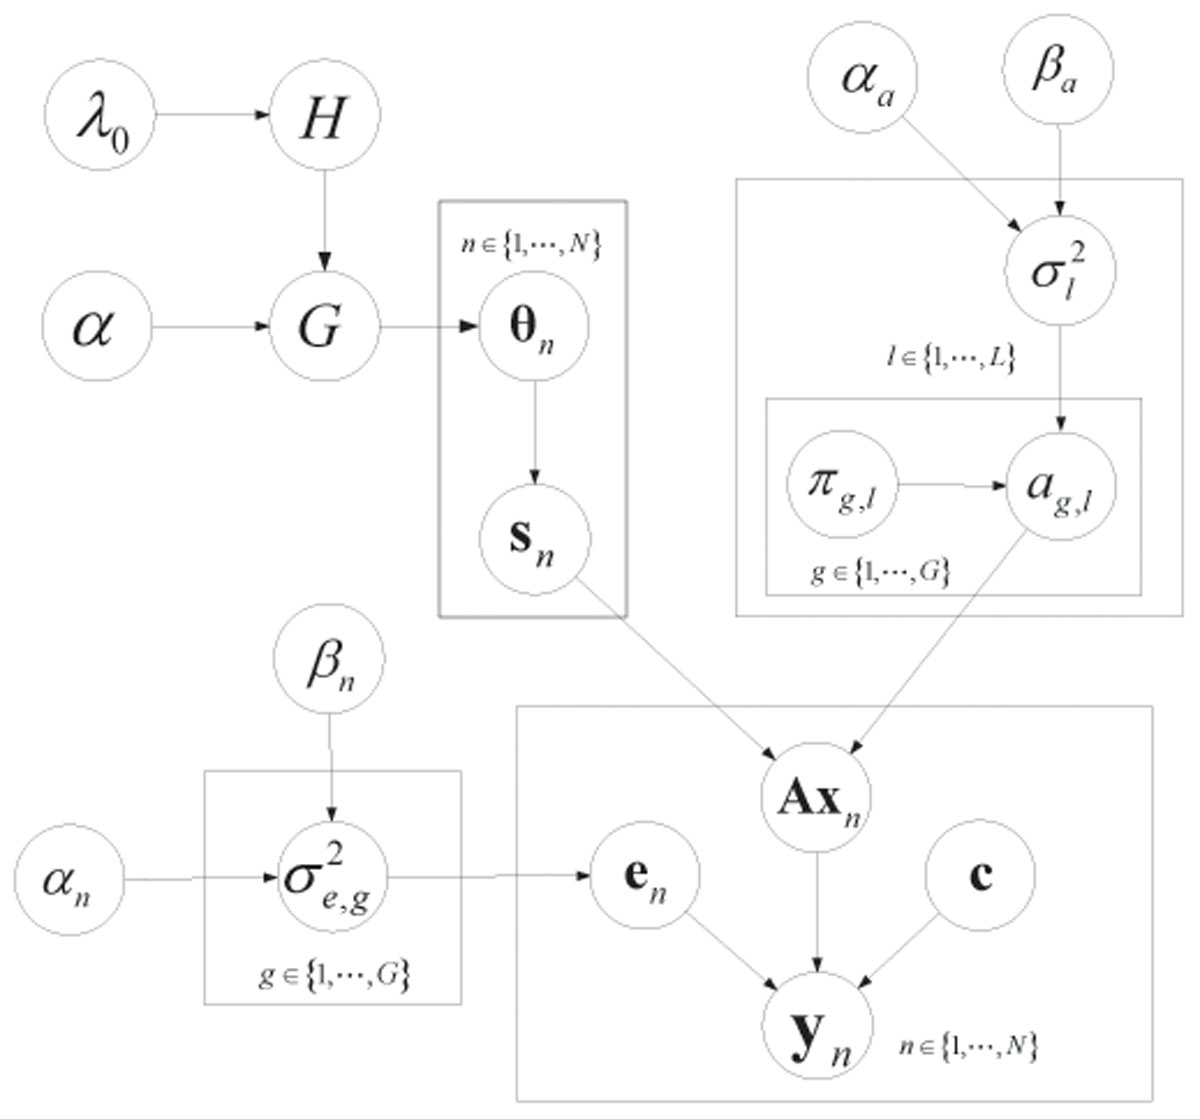 http://static-content.springer.com/image/art%3A10.1186%2F1477-5956-9-S1-S9/MediaObjects/12953_2011_Article_290_Fig1_HTML.jpg